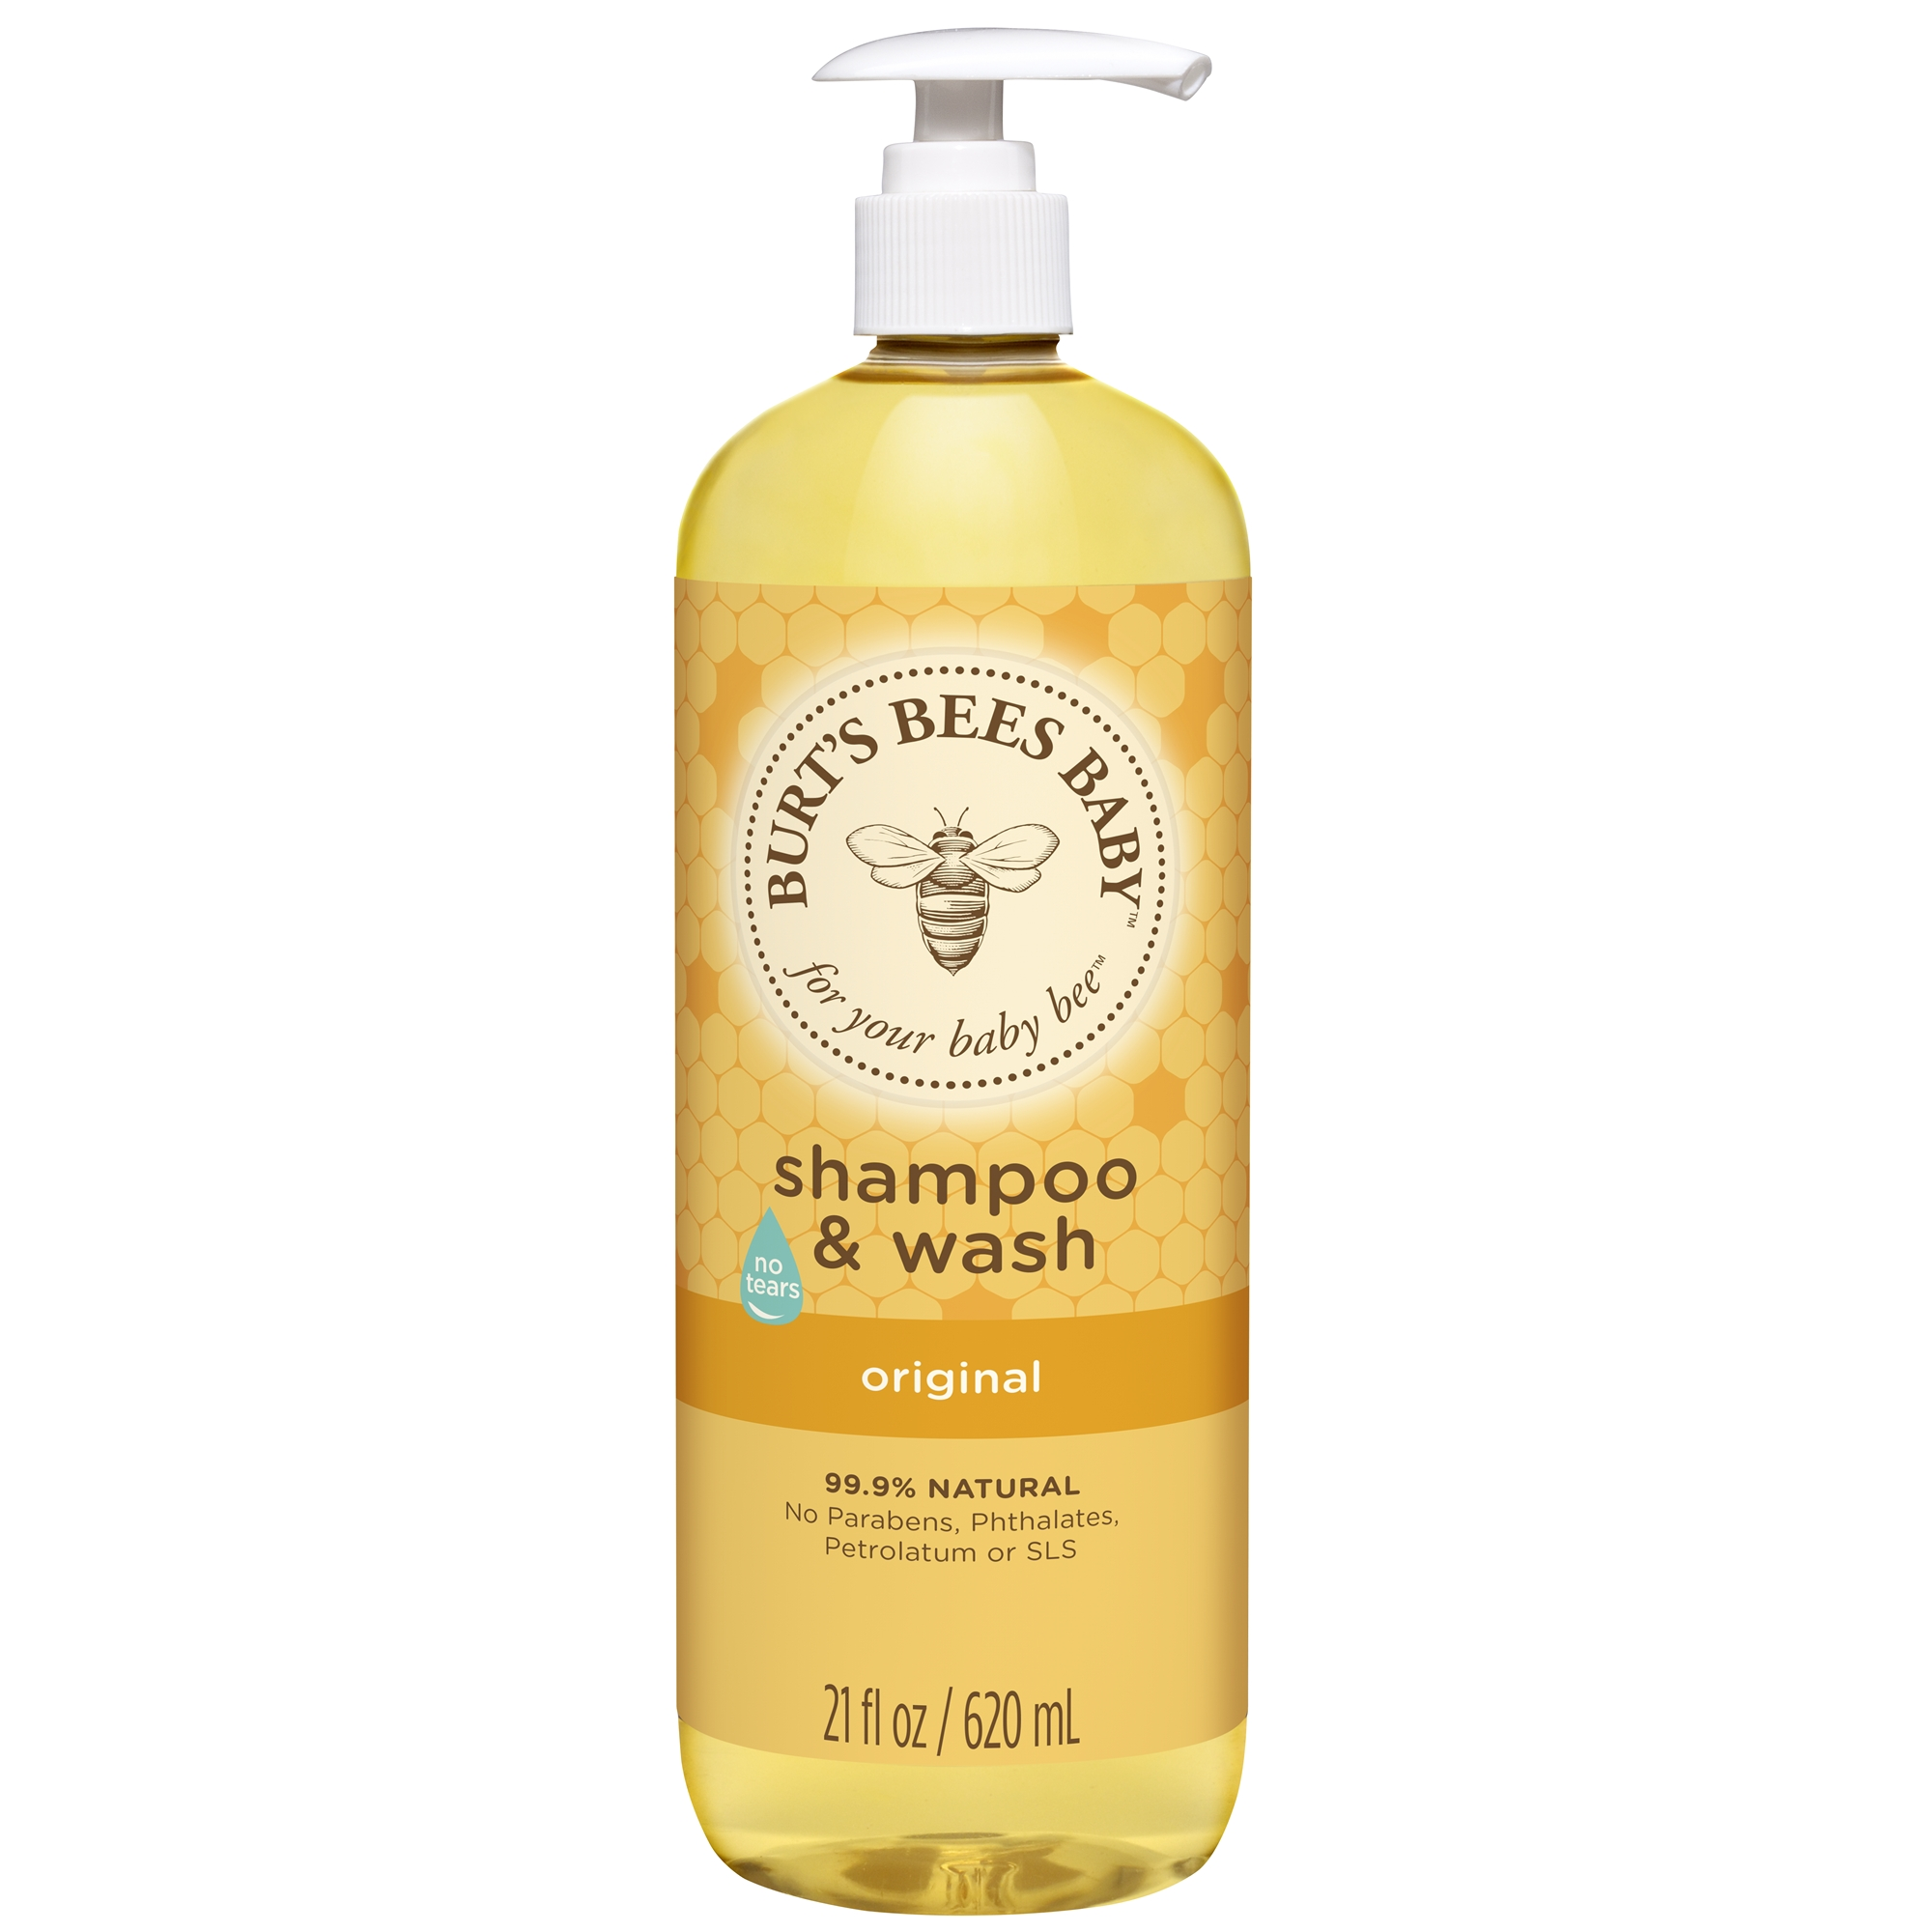 Burt's Bees Baby Shampoo & Wash, Original Tear Free Baby Soap - 21 oz Bottle